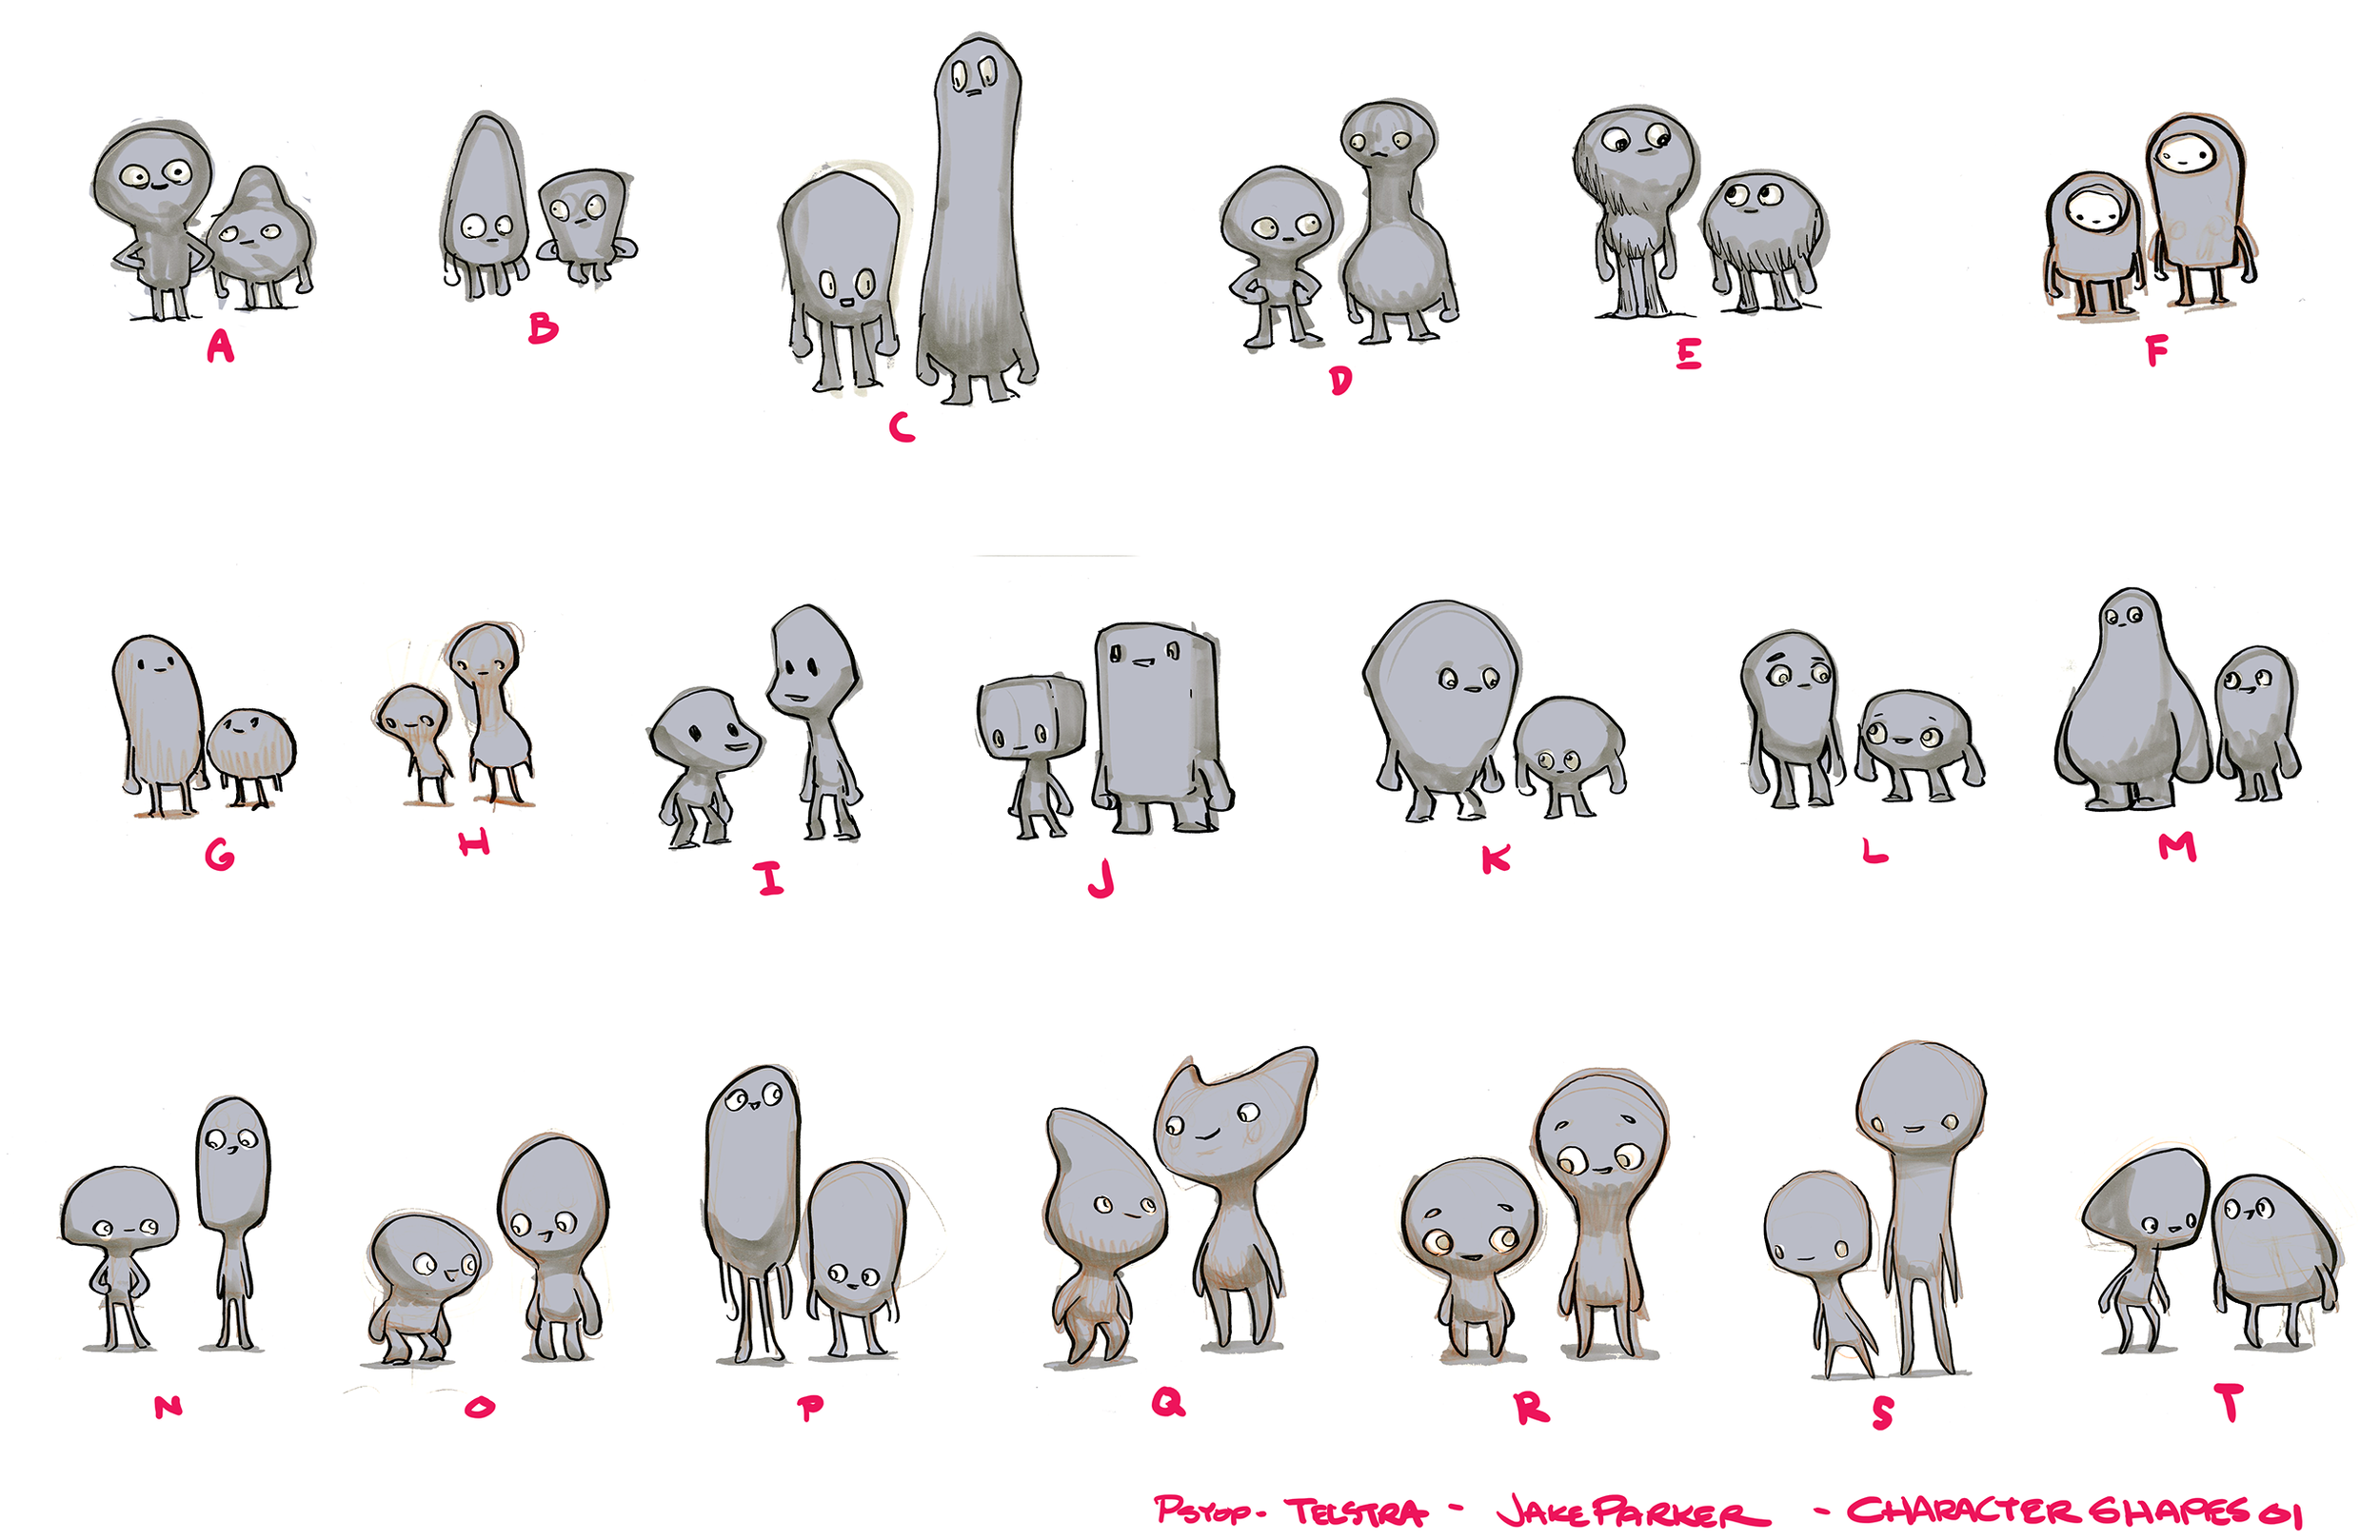 Charactershapes01.png